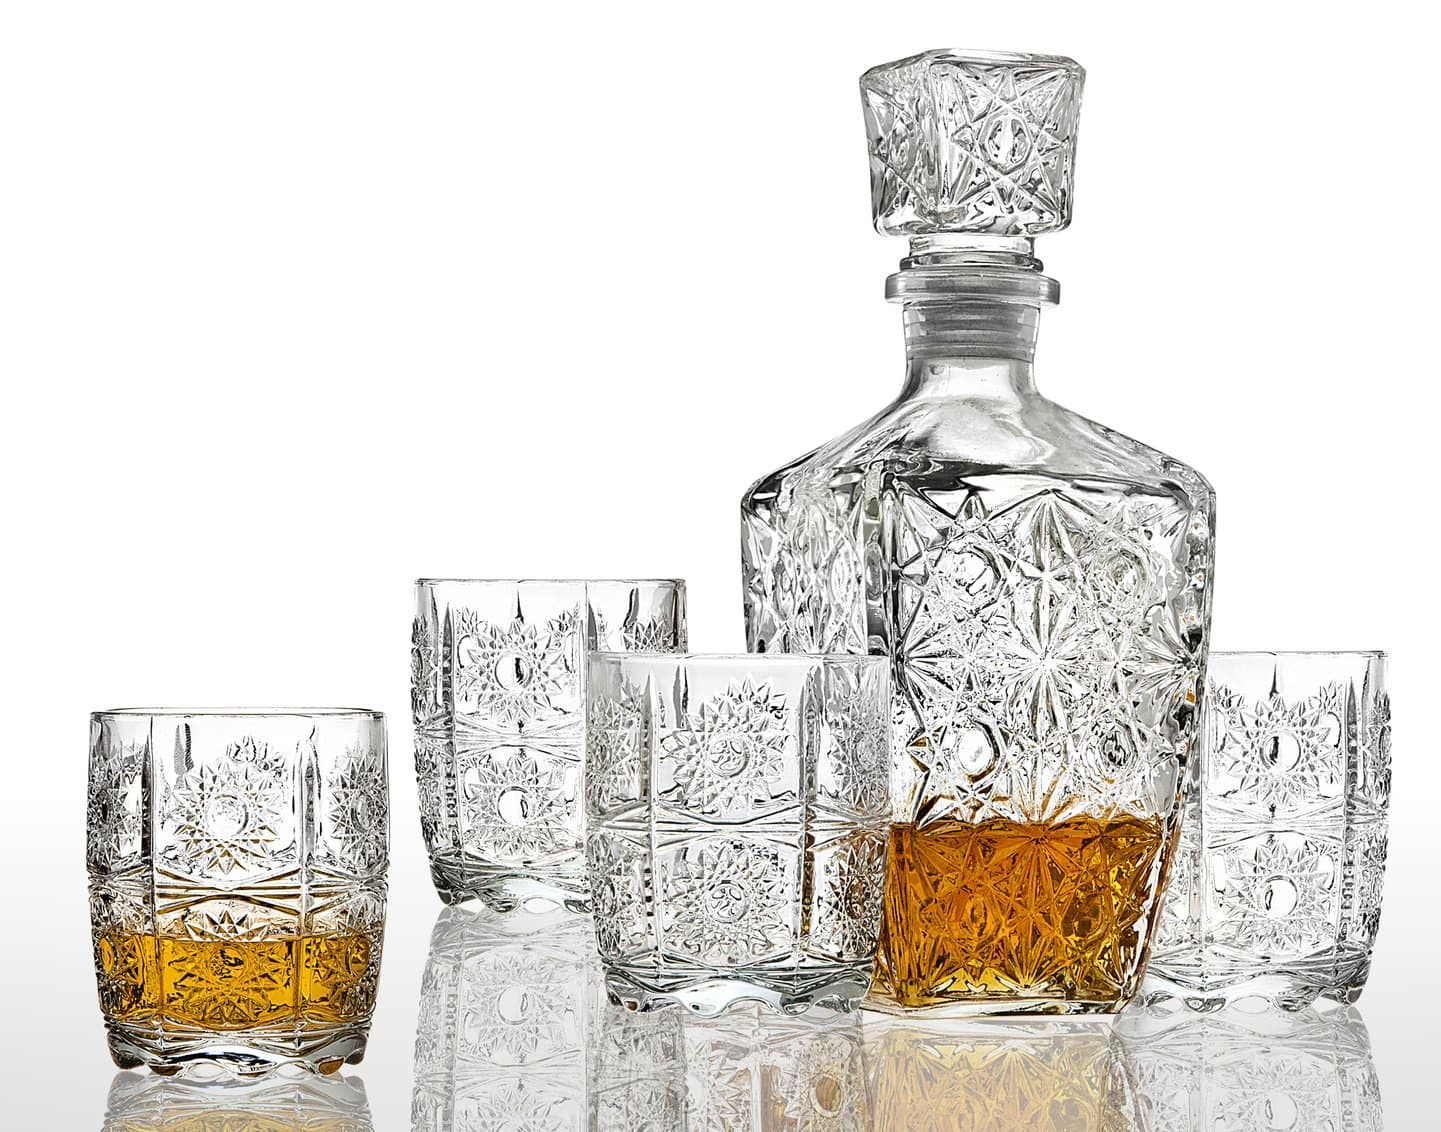 Studio Crystal Five Piece Whiskey Decanter and Glasses Set. $16.00, LE REGALO Five Piece Whiskey Decanter and Glasses Set. $14.29 @ Amazon